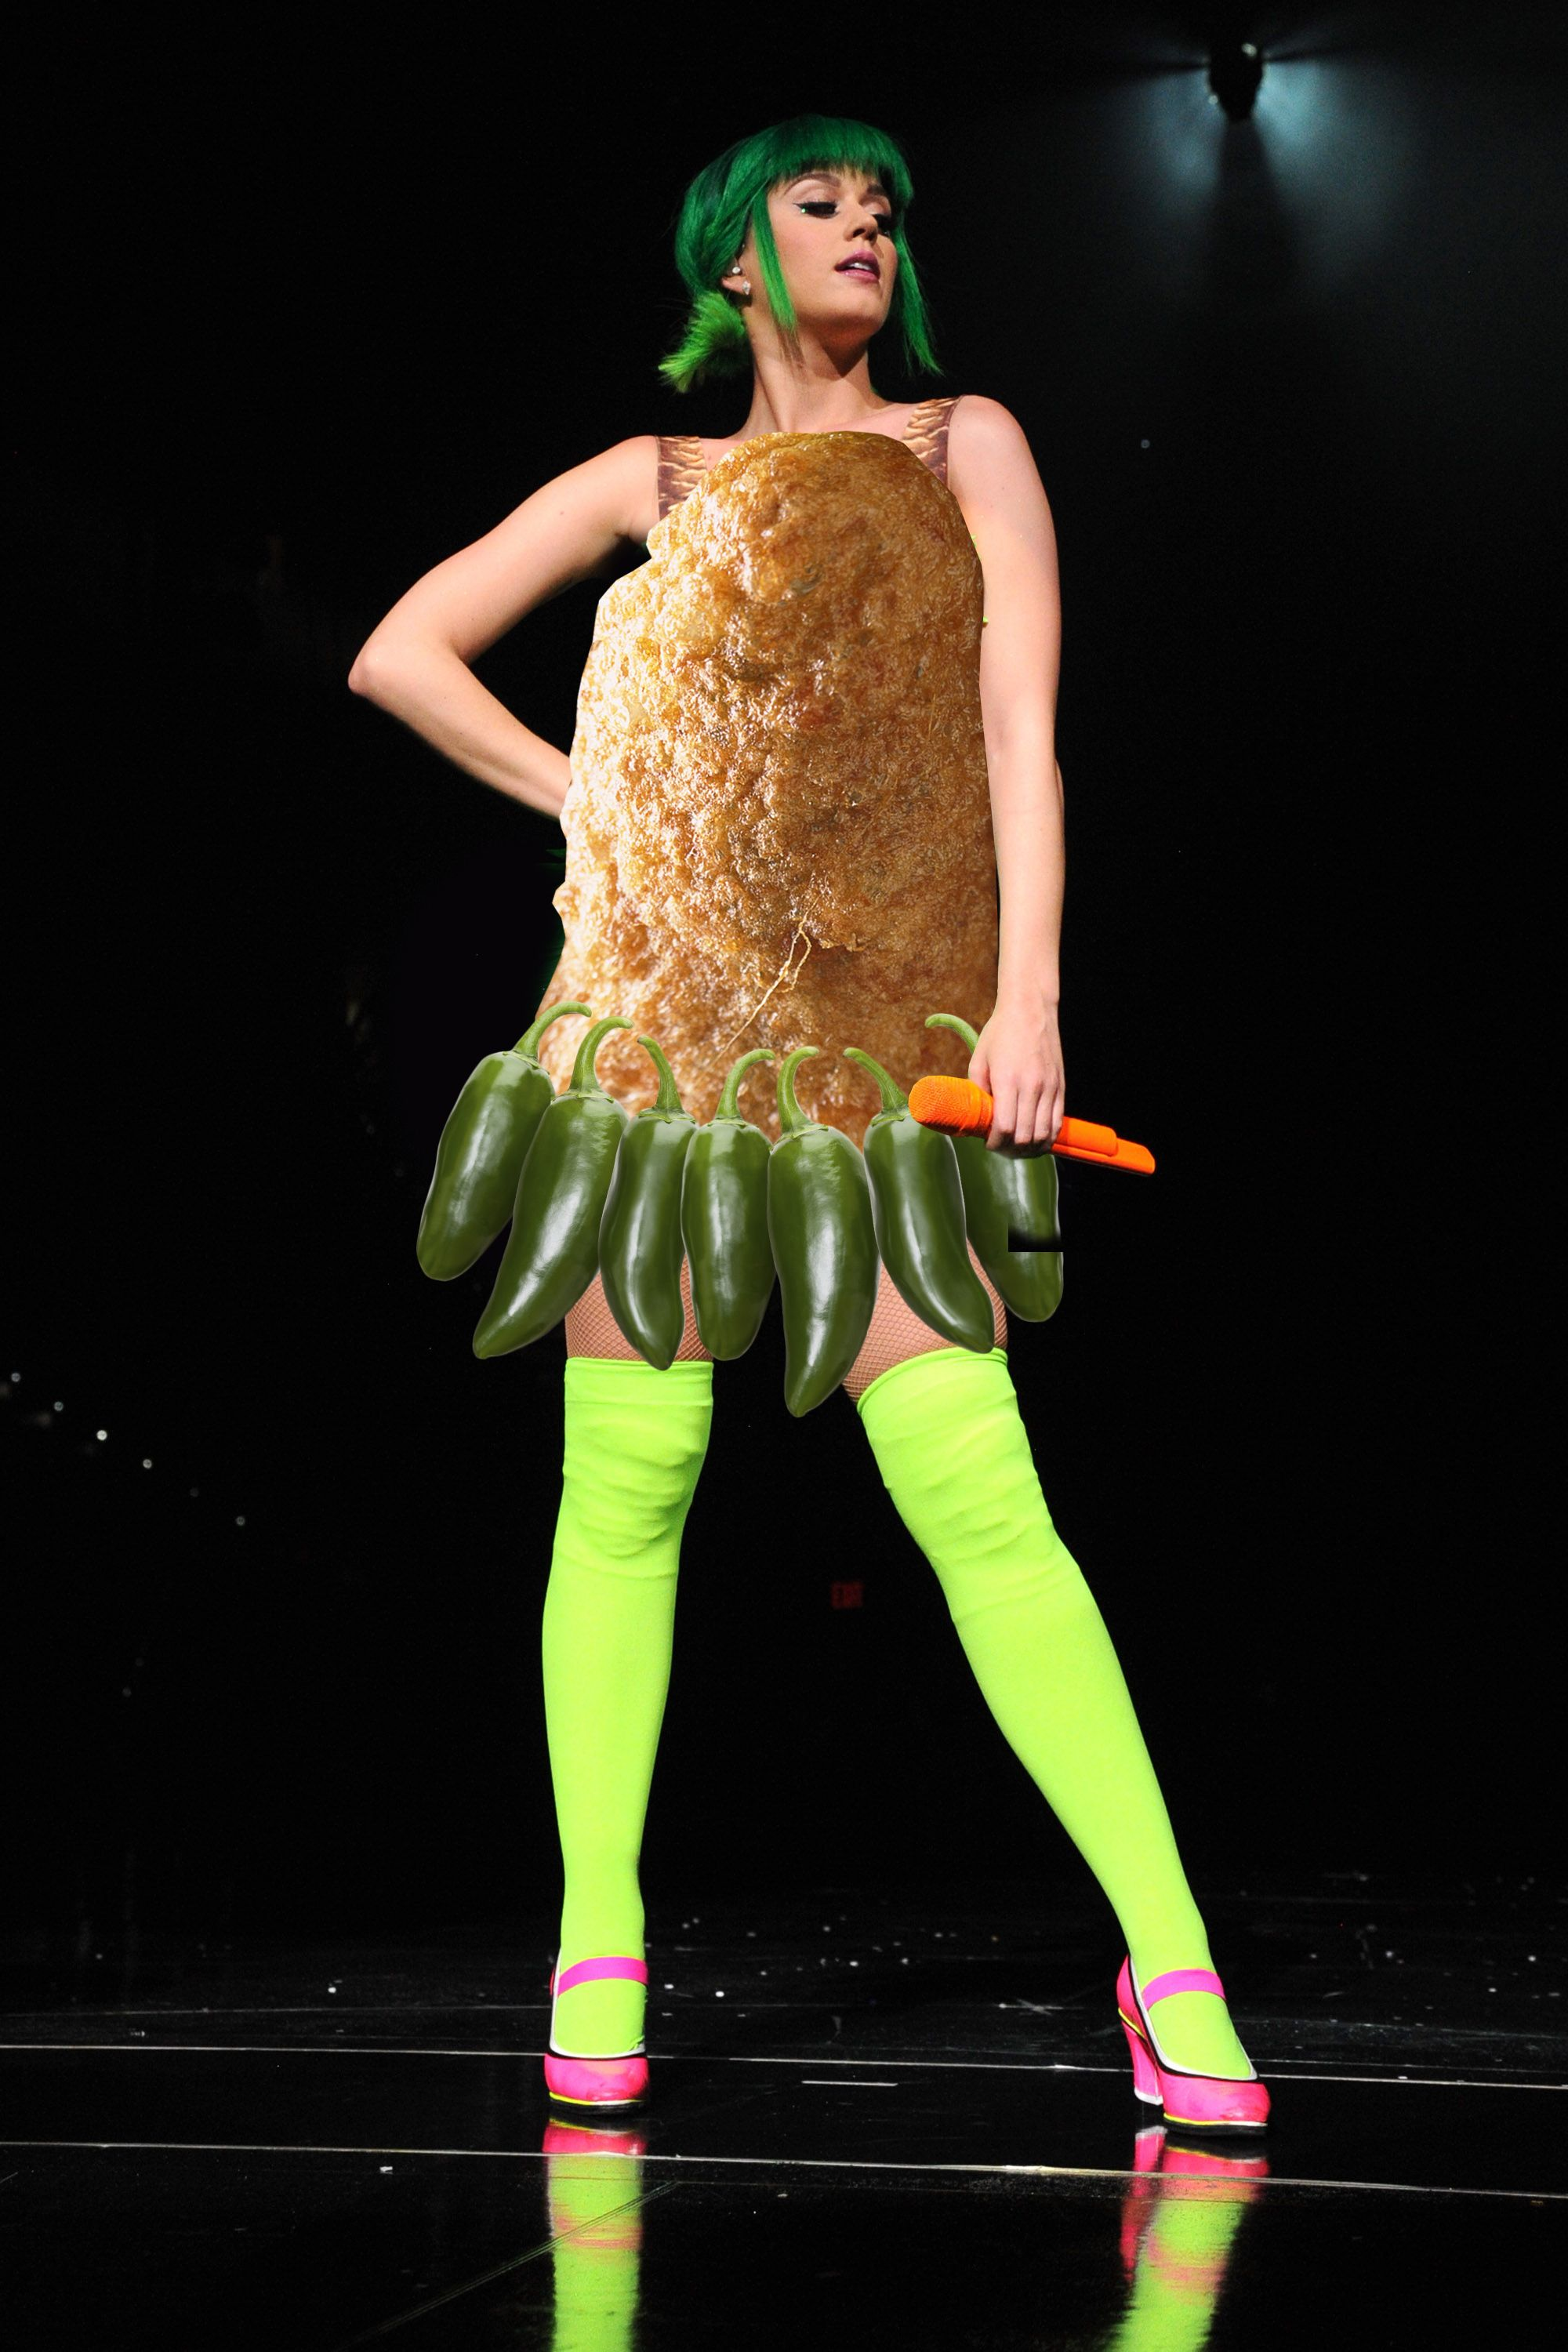 9 Snack Costumes Katy Perry Might Wear for Her Super Bowl Performance